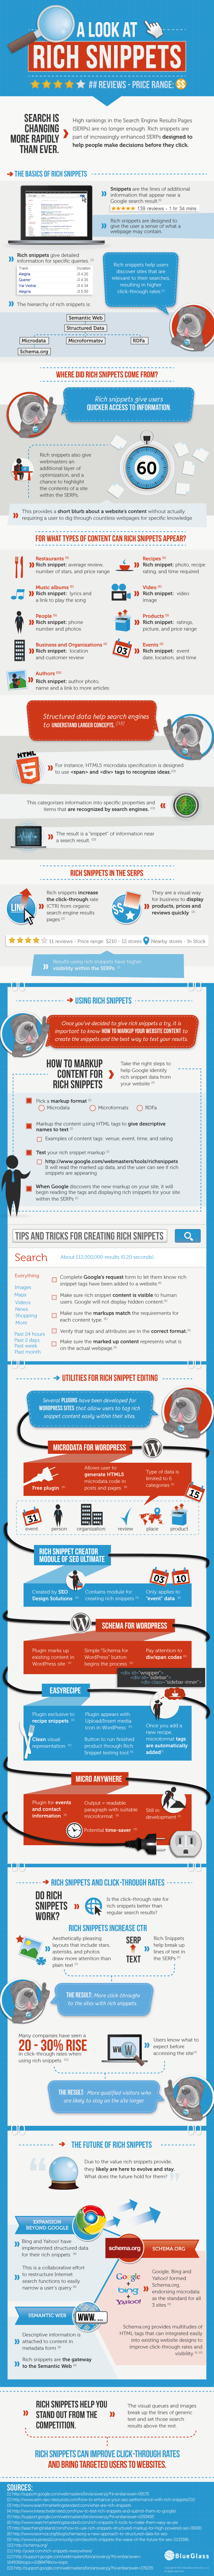 Guide to Rich Snippets by BlueGlass Interactive on SEOmoz